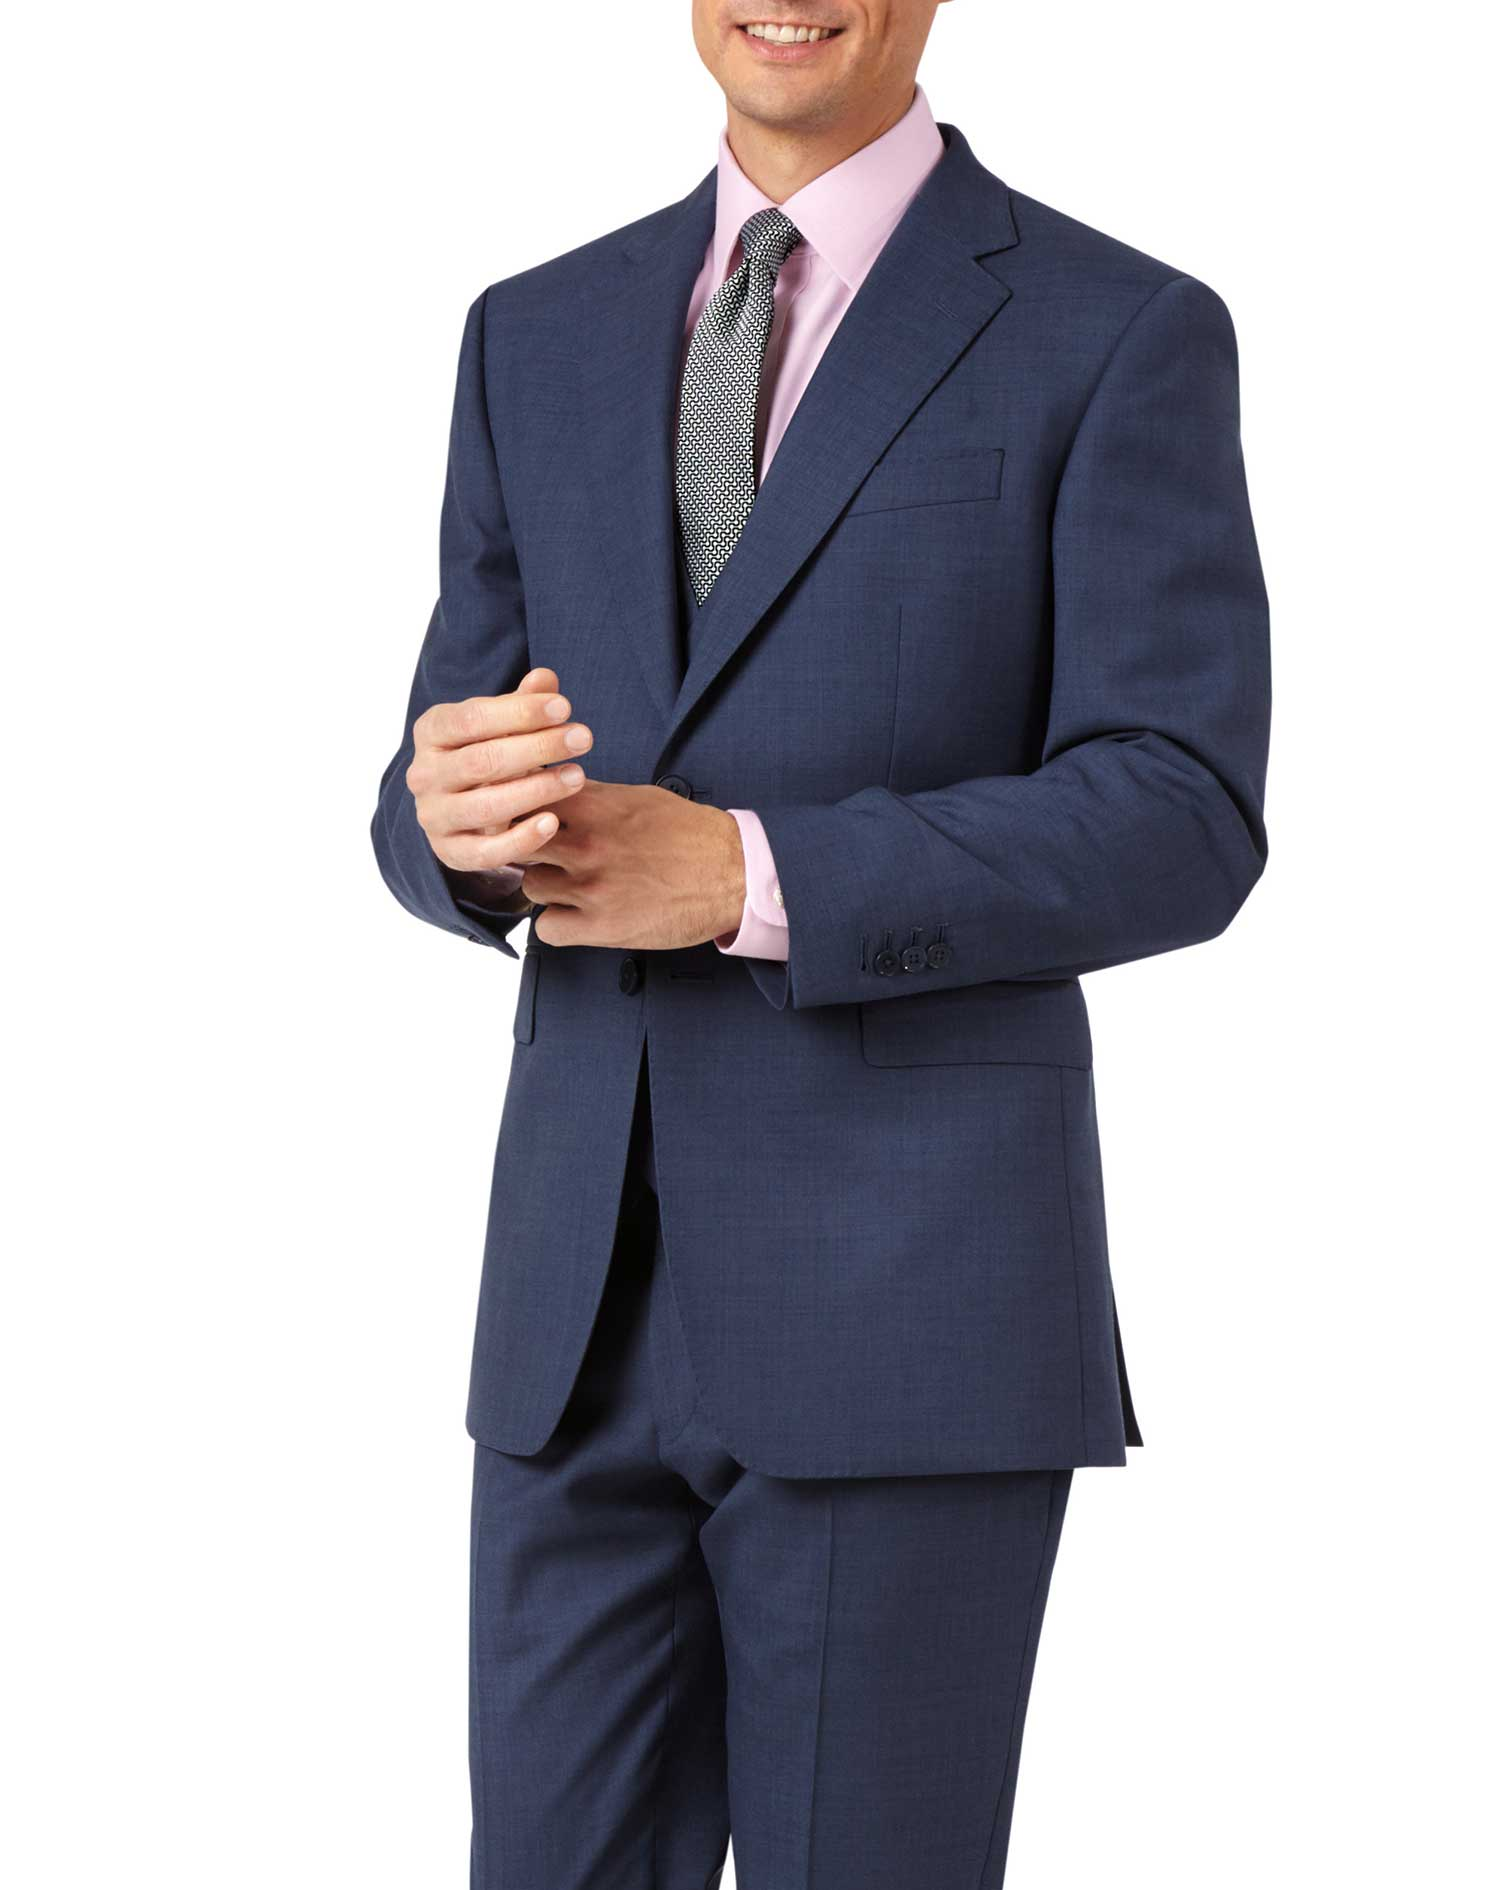 Airforce Blue Slim Fit Sharkskin Travel Suit Wool Jacket Size 40 Regular by Charles Tyrwhitt